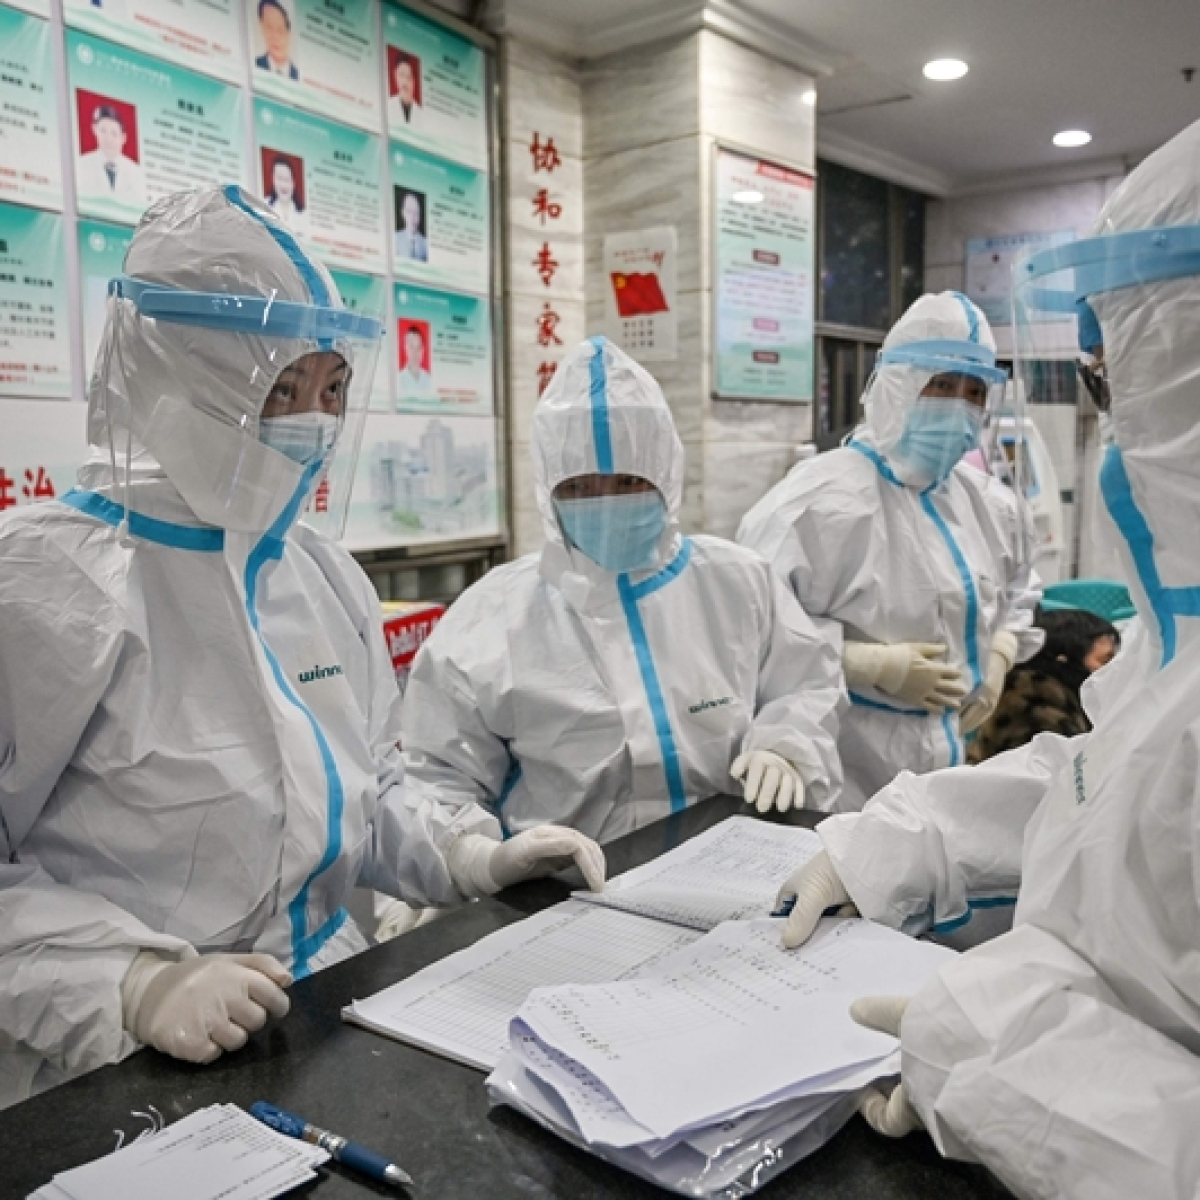 Coronavirus outbreak: Asian markets fall as virus hits earnings, growth